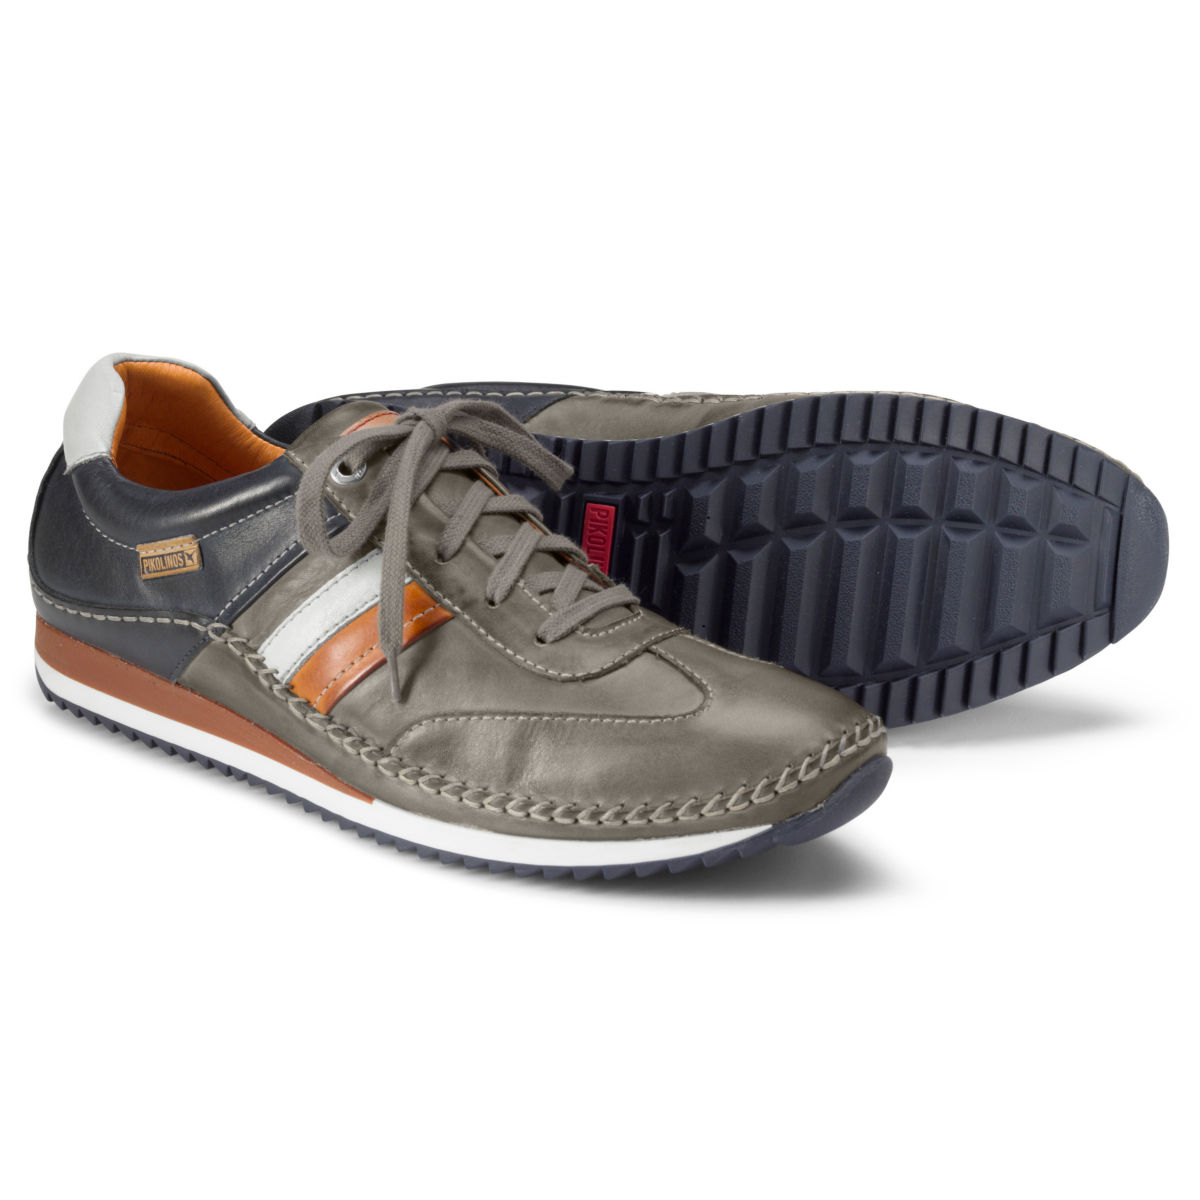 Orvis-Exclusive Pikolinos®  Whipstitch Liverpool - image number 0